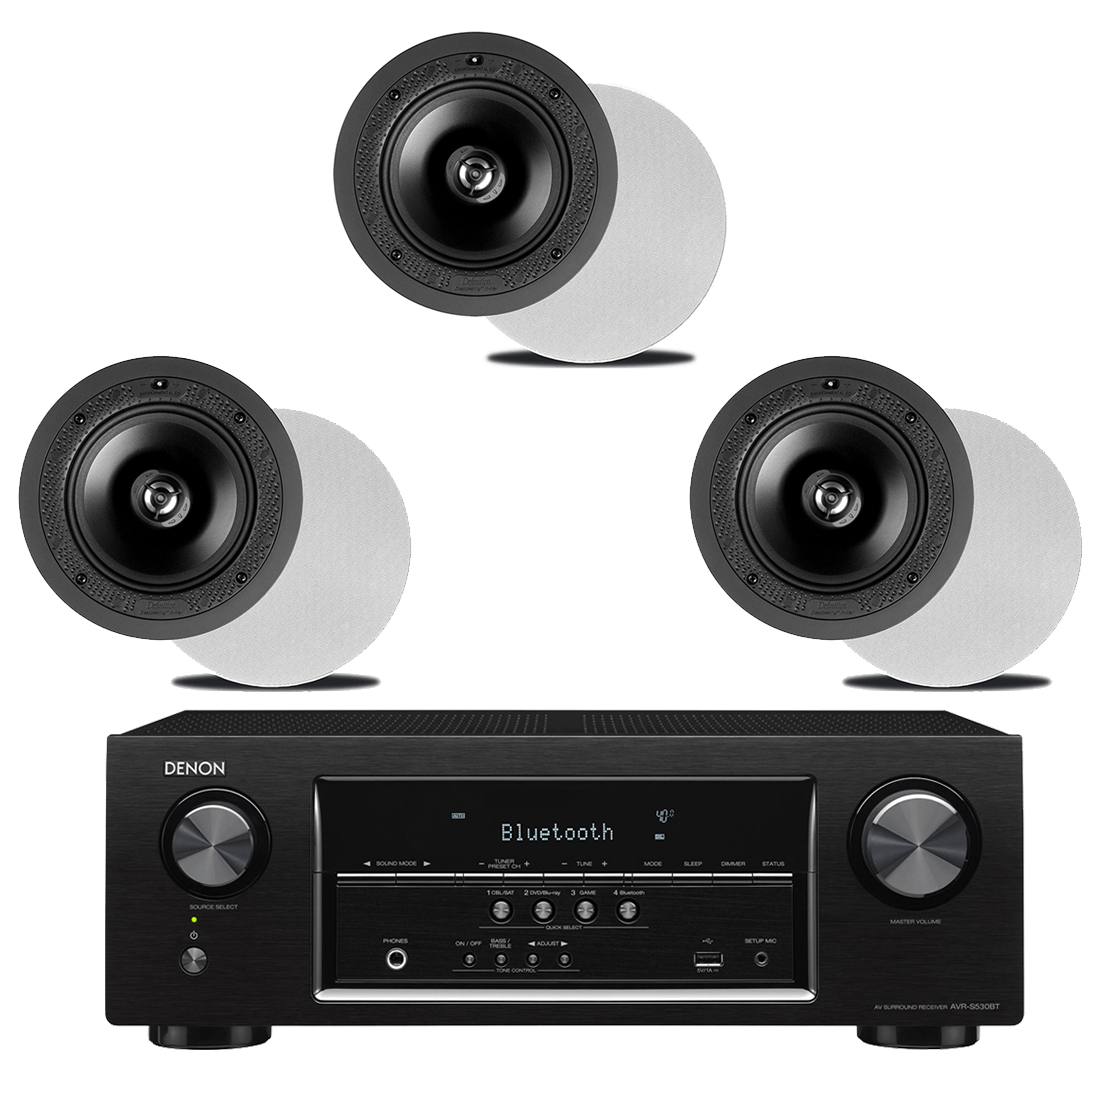 Denon AVR-S530BT 5 2 Receiver – B-Stock | Definitive Technology DI 6 5R  In-Wall Speakers x3 – Bundle